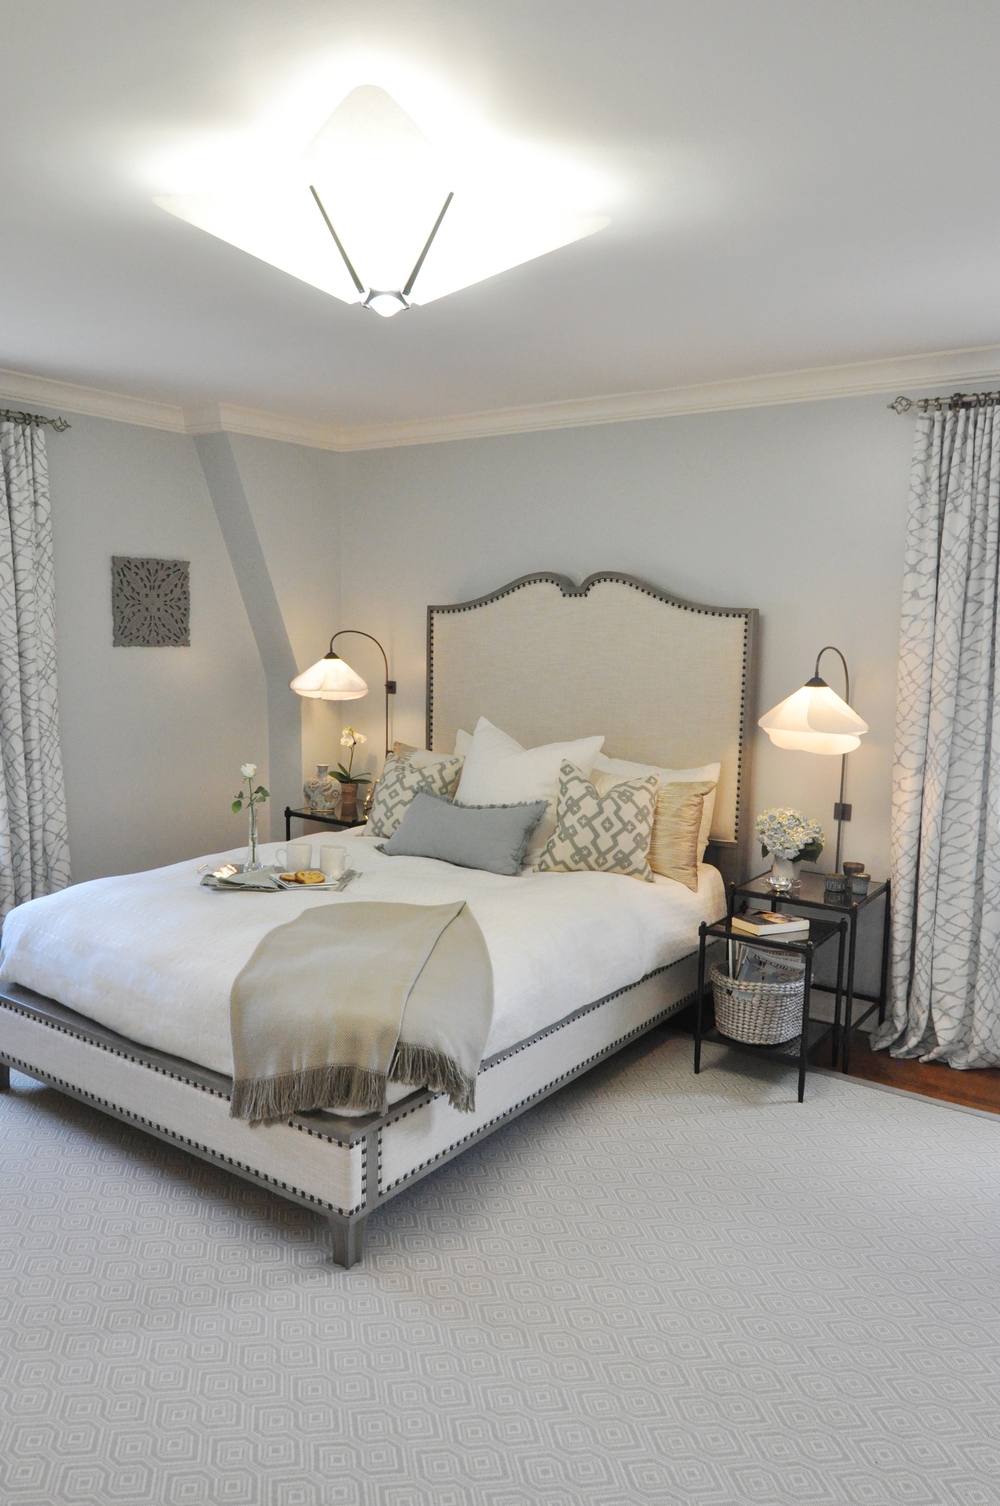 Kim Annick Mitchell_Design Lead_HGTV_Buying and Selling with The Property Brothers_Season 5_Episode 8_Master Bedroom Design_Hubbardton Forge Lighting_Blue and Gray Bedroom Colors_8_31_2016 Airdate.jpg